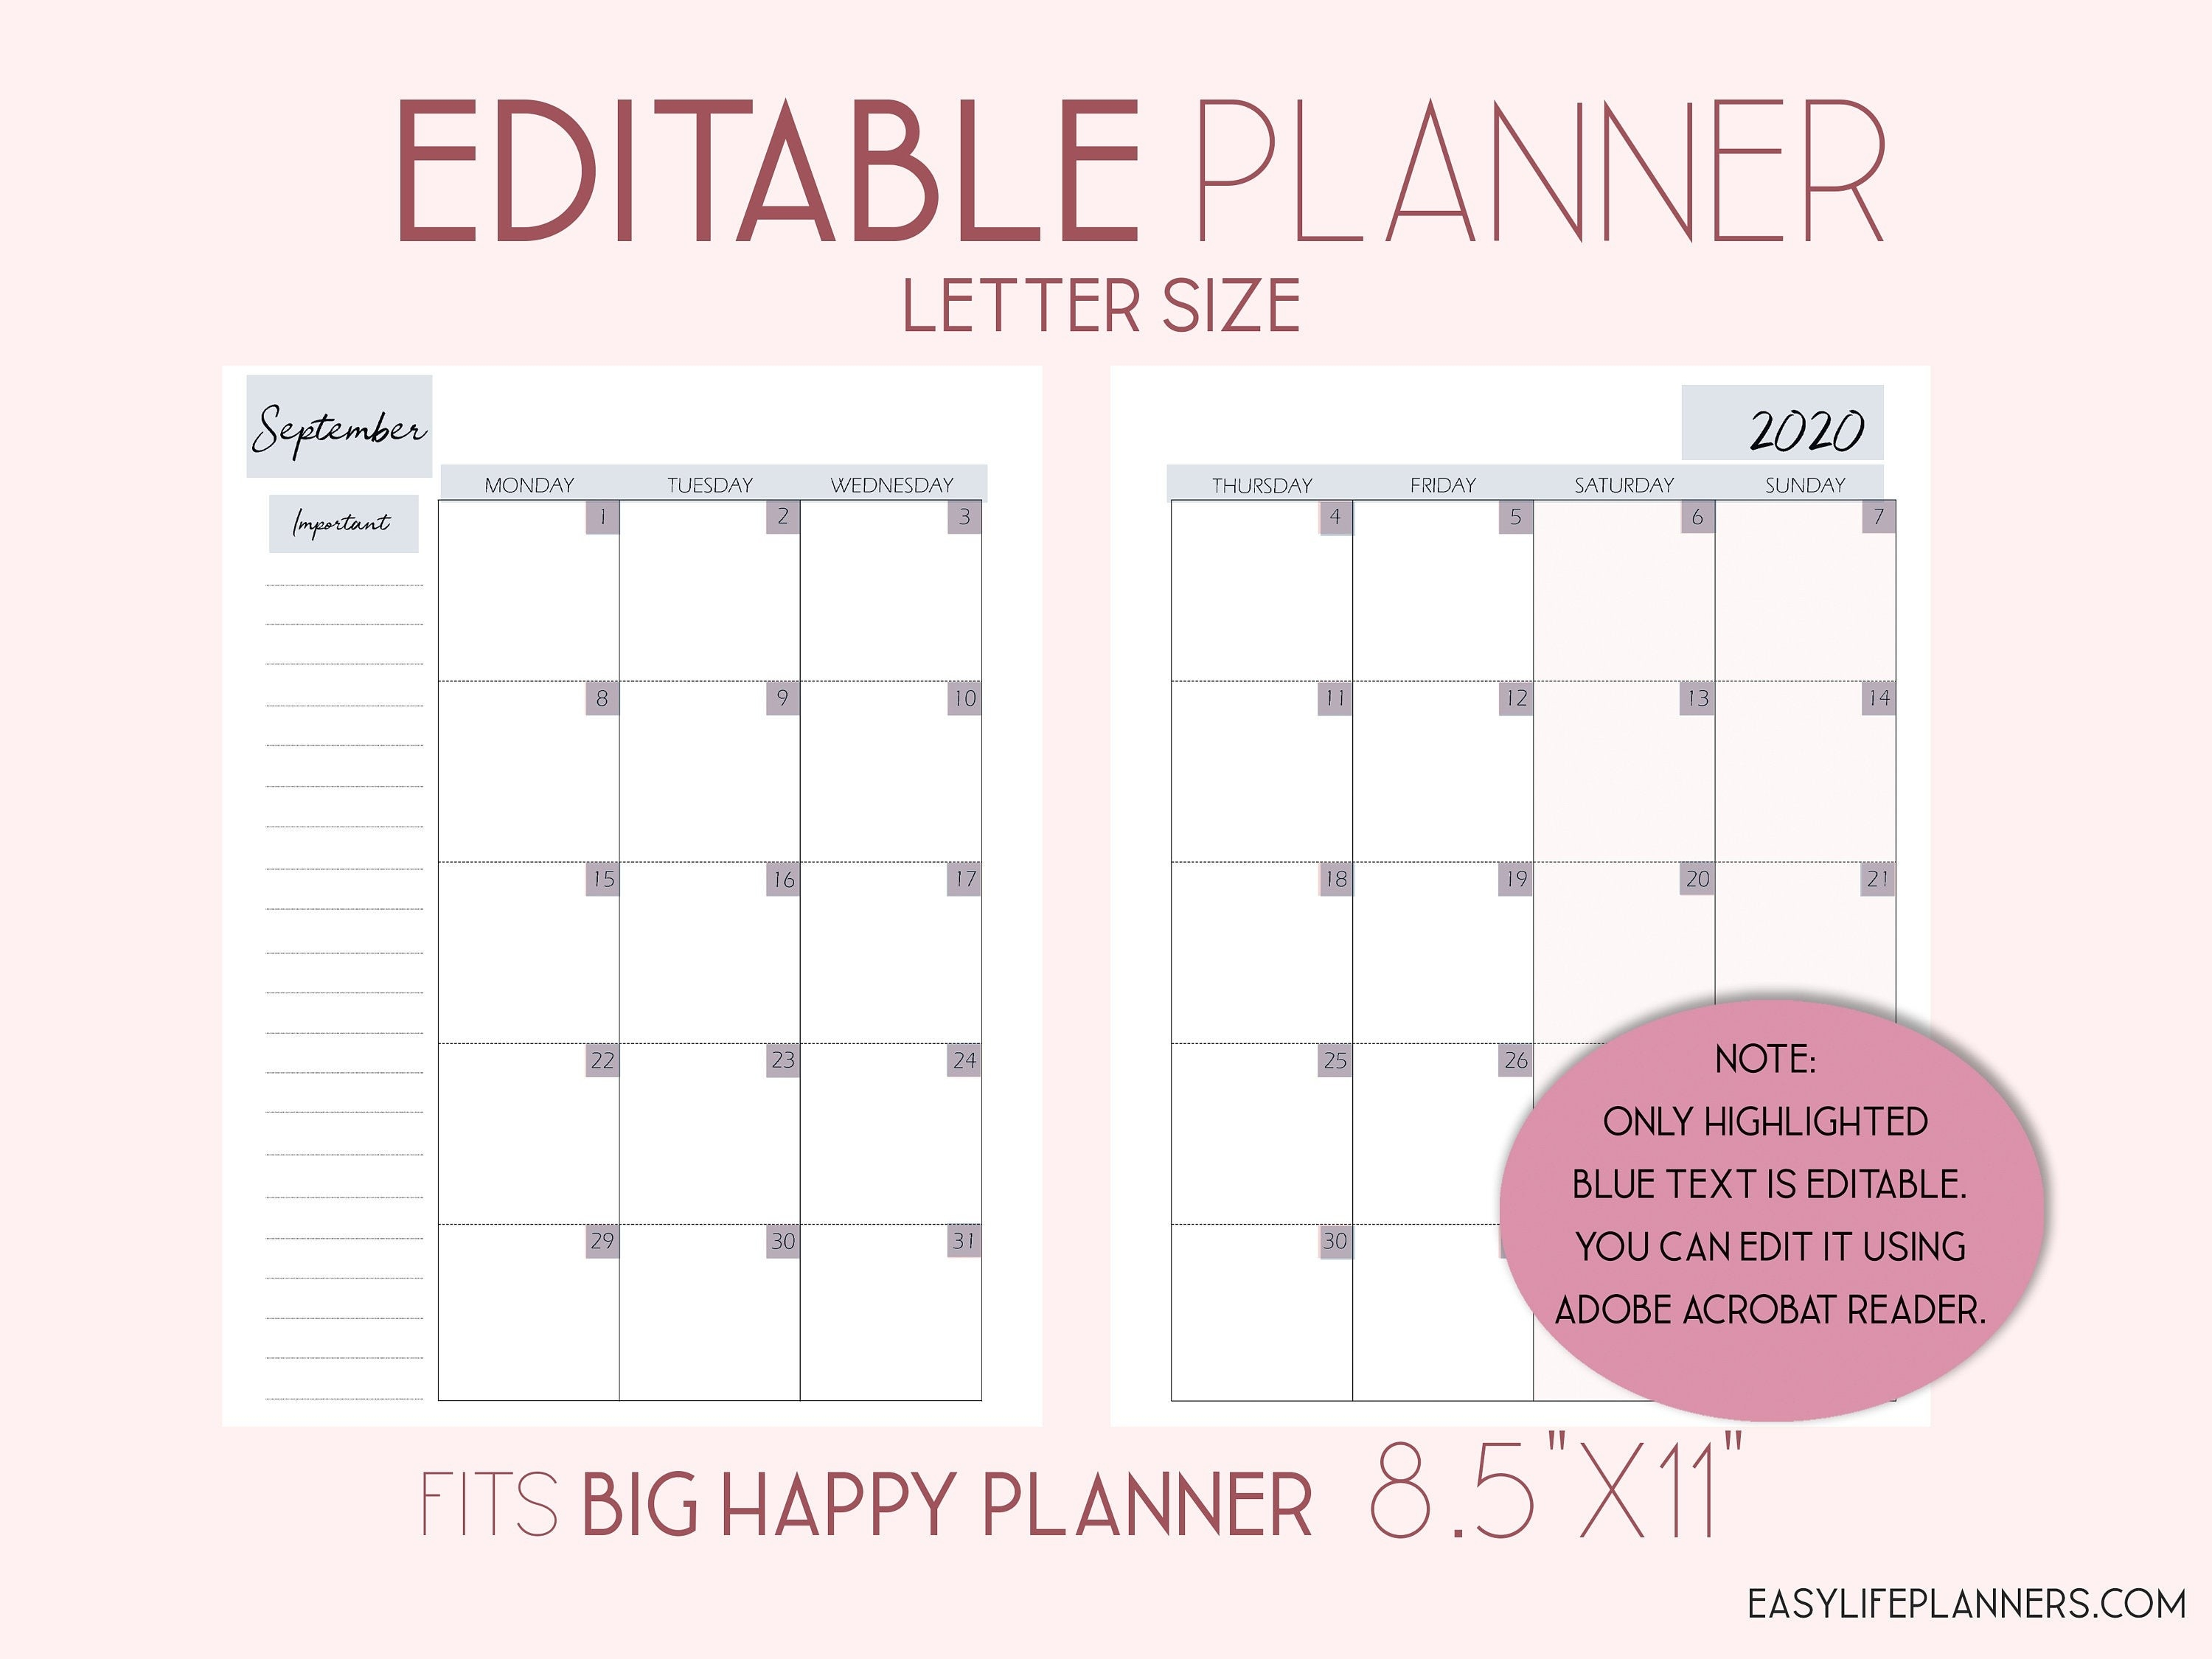 Editable Planner, 2020 Monthly Planner Pages, Monthly Layout-2 Page Monthly Planner 2020 Template